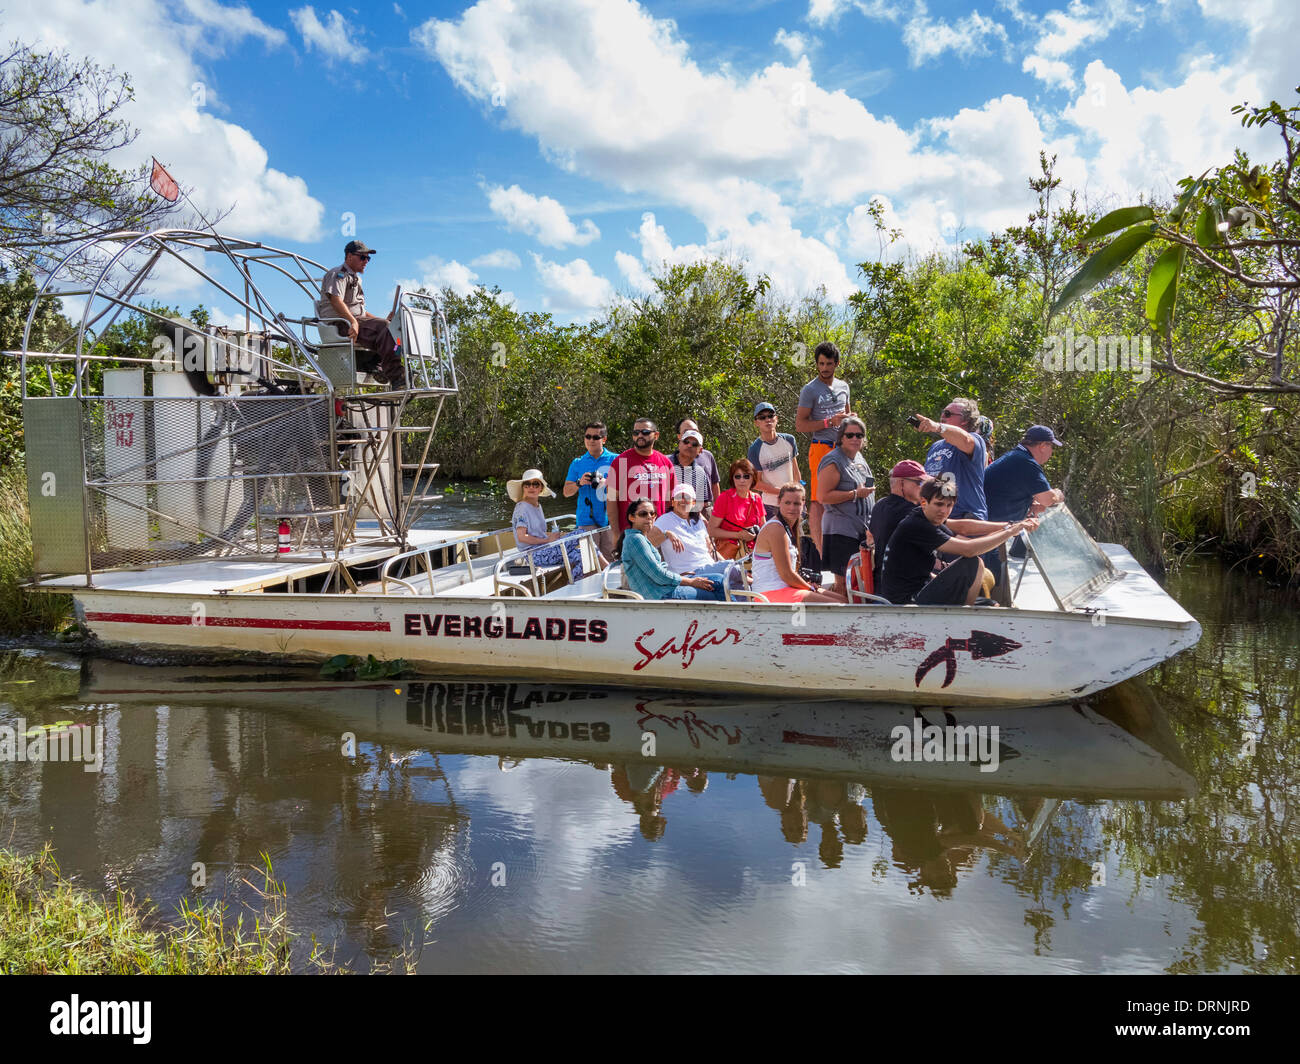 Florida Everglades National Park, USA - Group of tourists on an Airboat sightseeing ride boat tour trip in summer - Stock Image